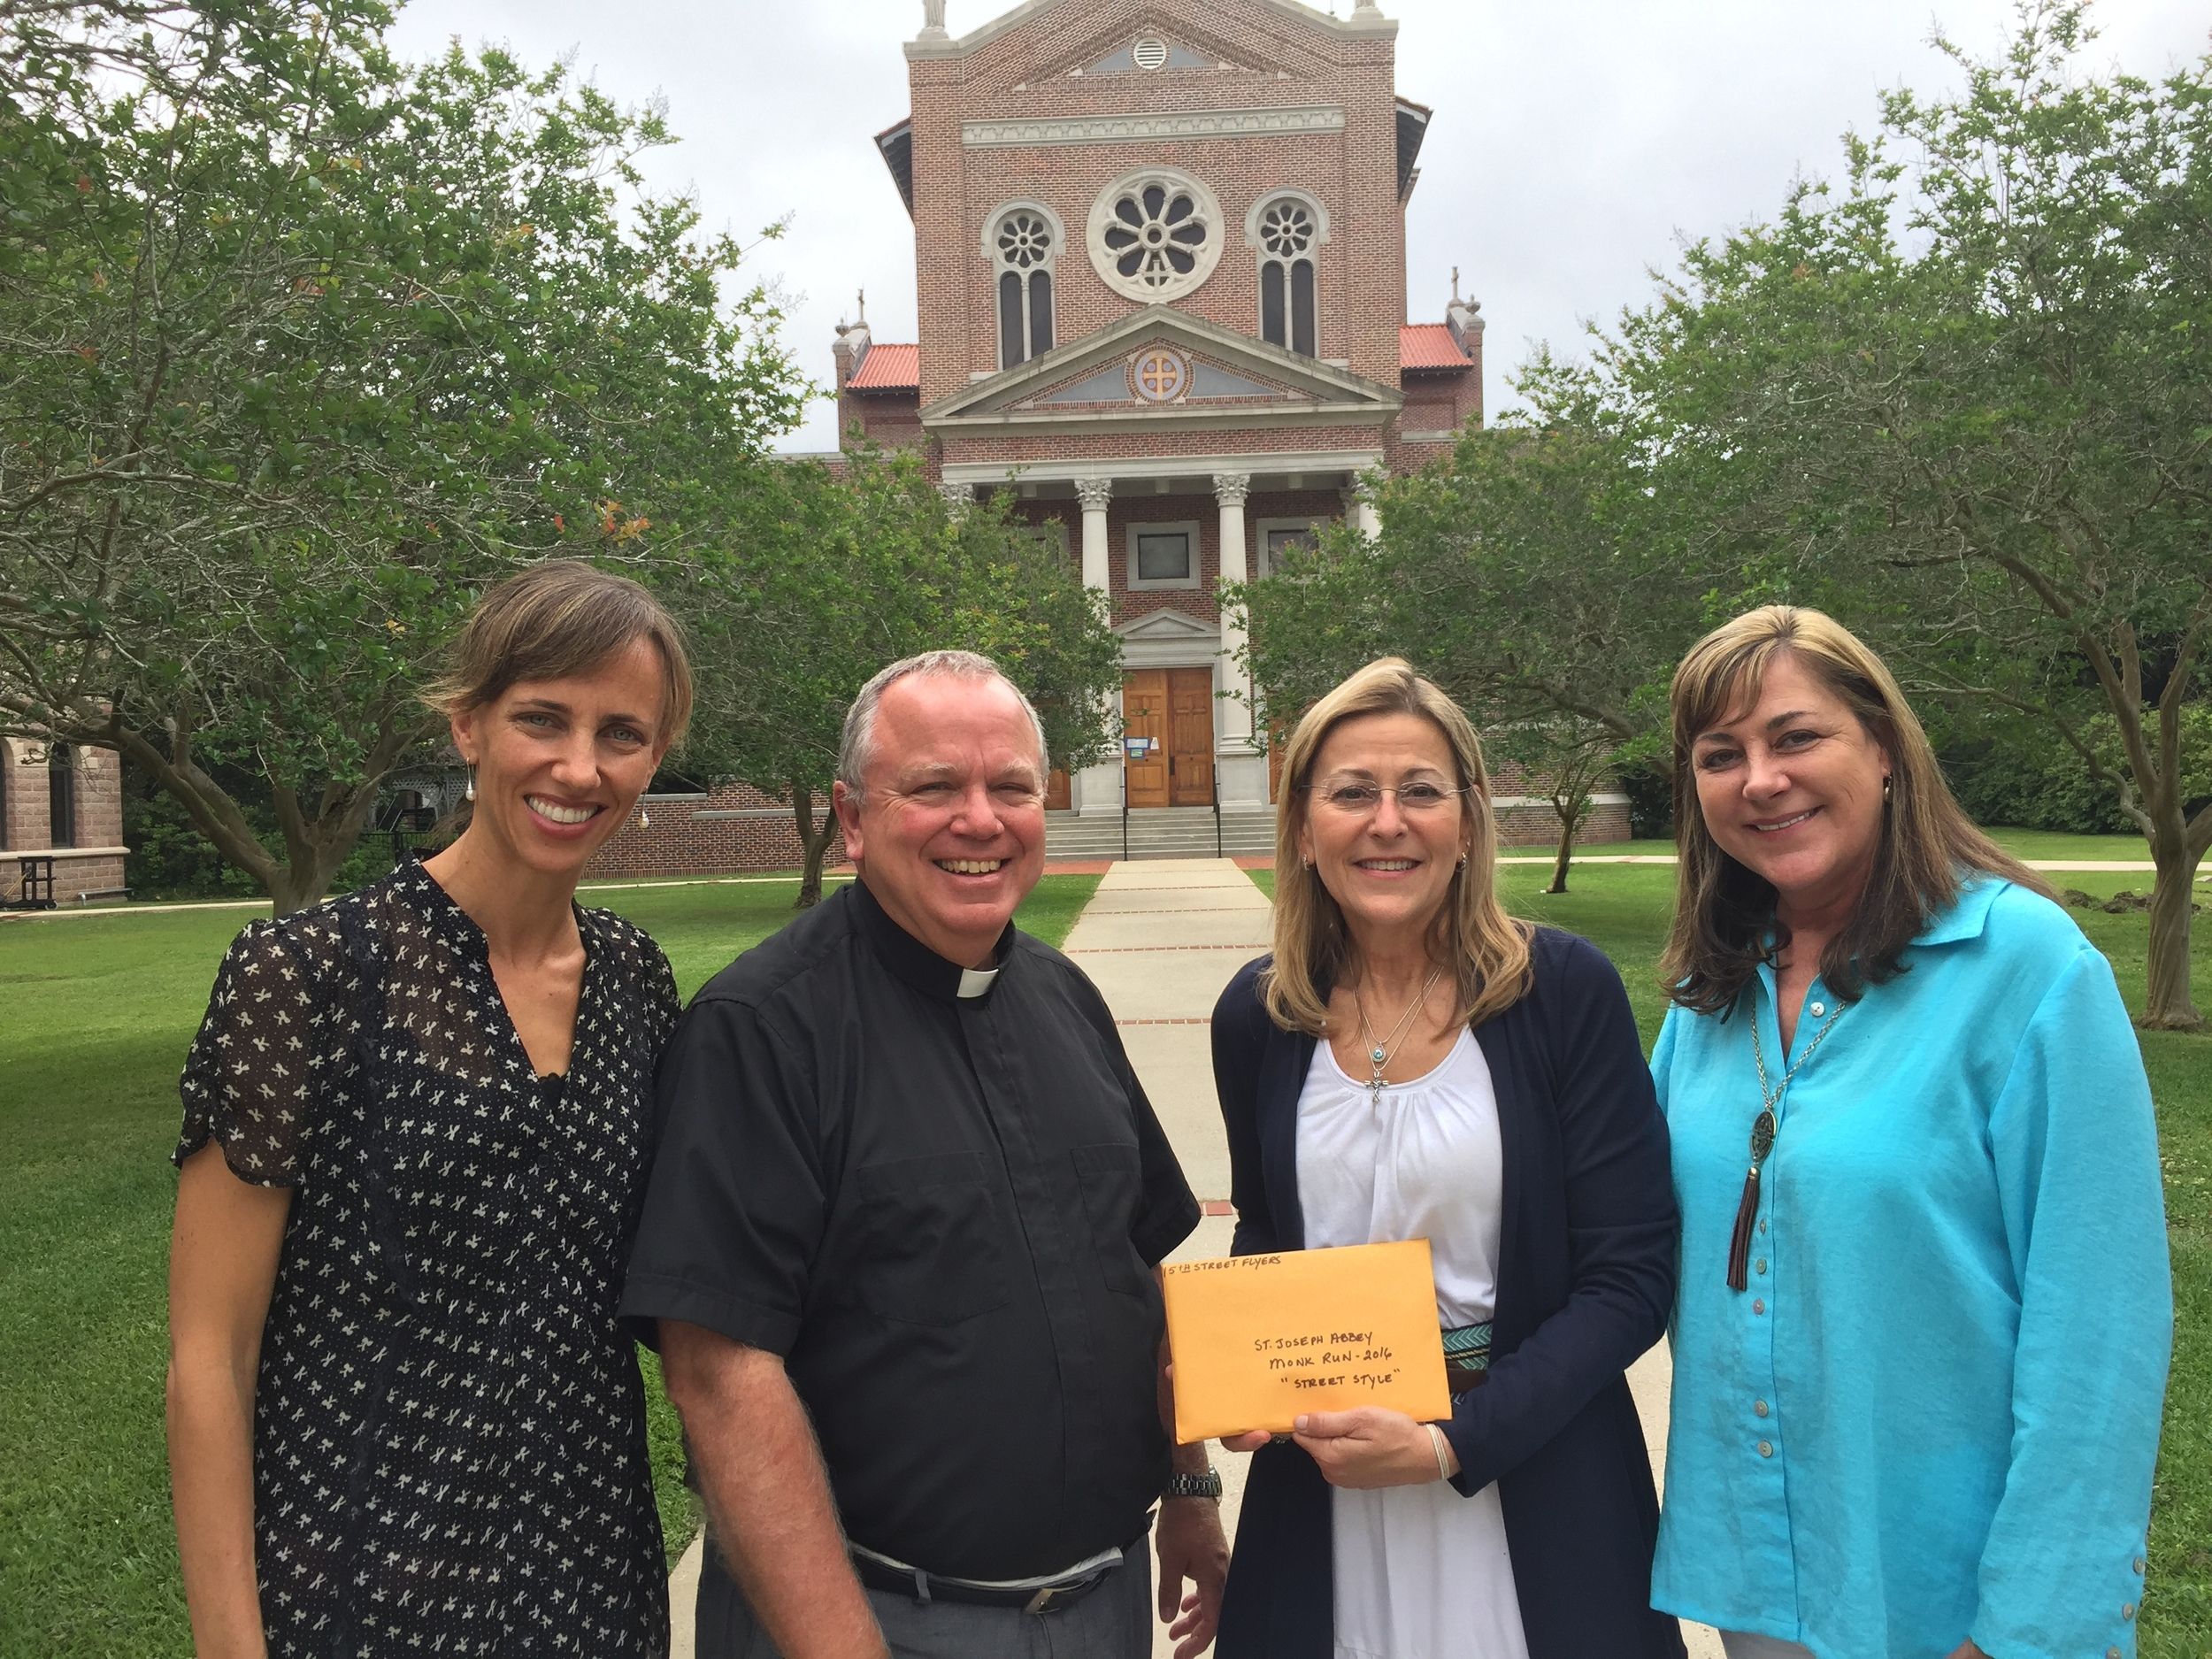 Abbot Justin Brown, O.S.B., is presented with a check for $7,815 from this year's Monk Run by Diane Weiss of the 15th Street Flyers. Standing with Brown and Weiss are Leslie Tate, Director of Institutional Advancement for the Abbey and Kathy Nastasi, Manager of Marketing and Volunteers for the Abbey.